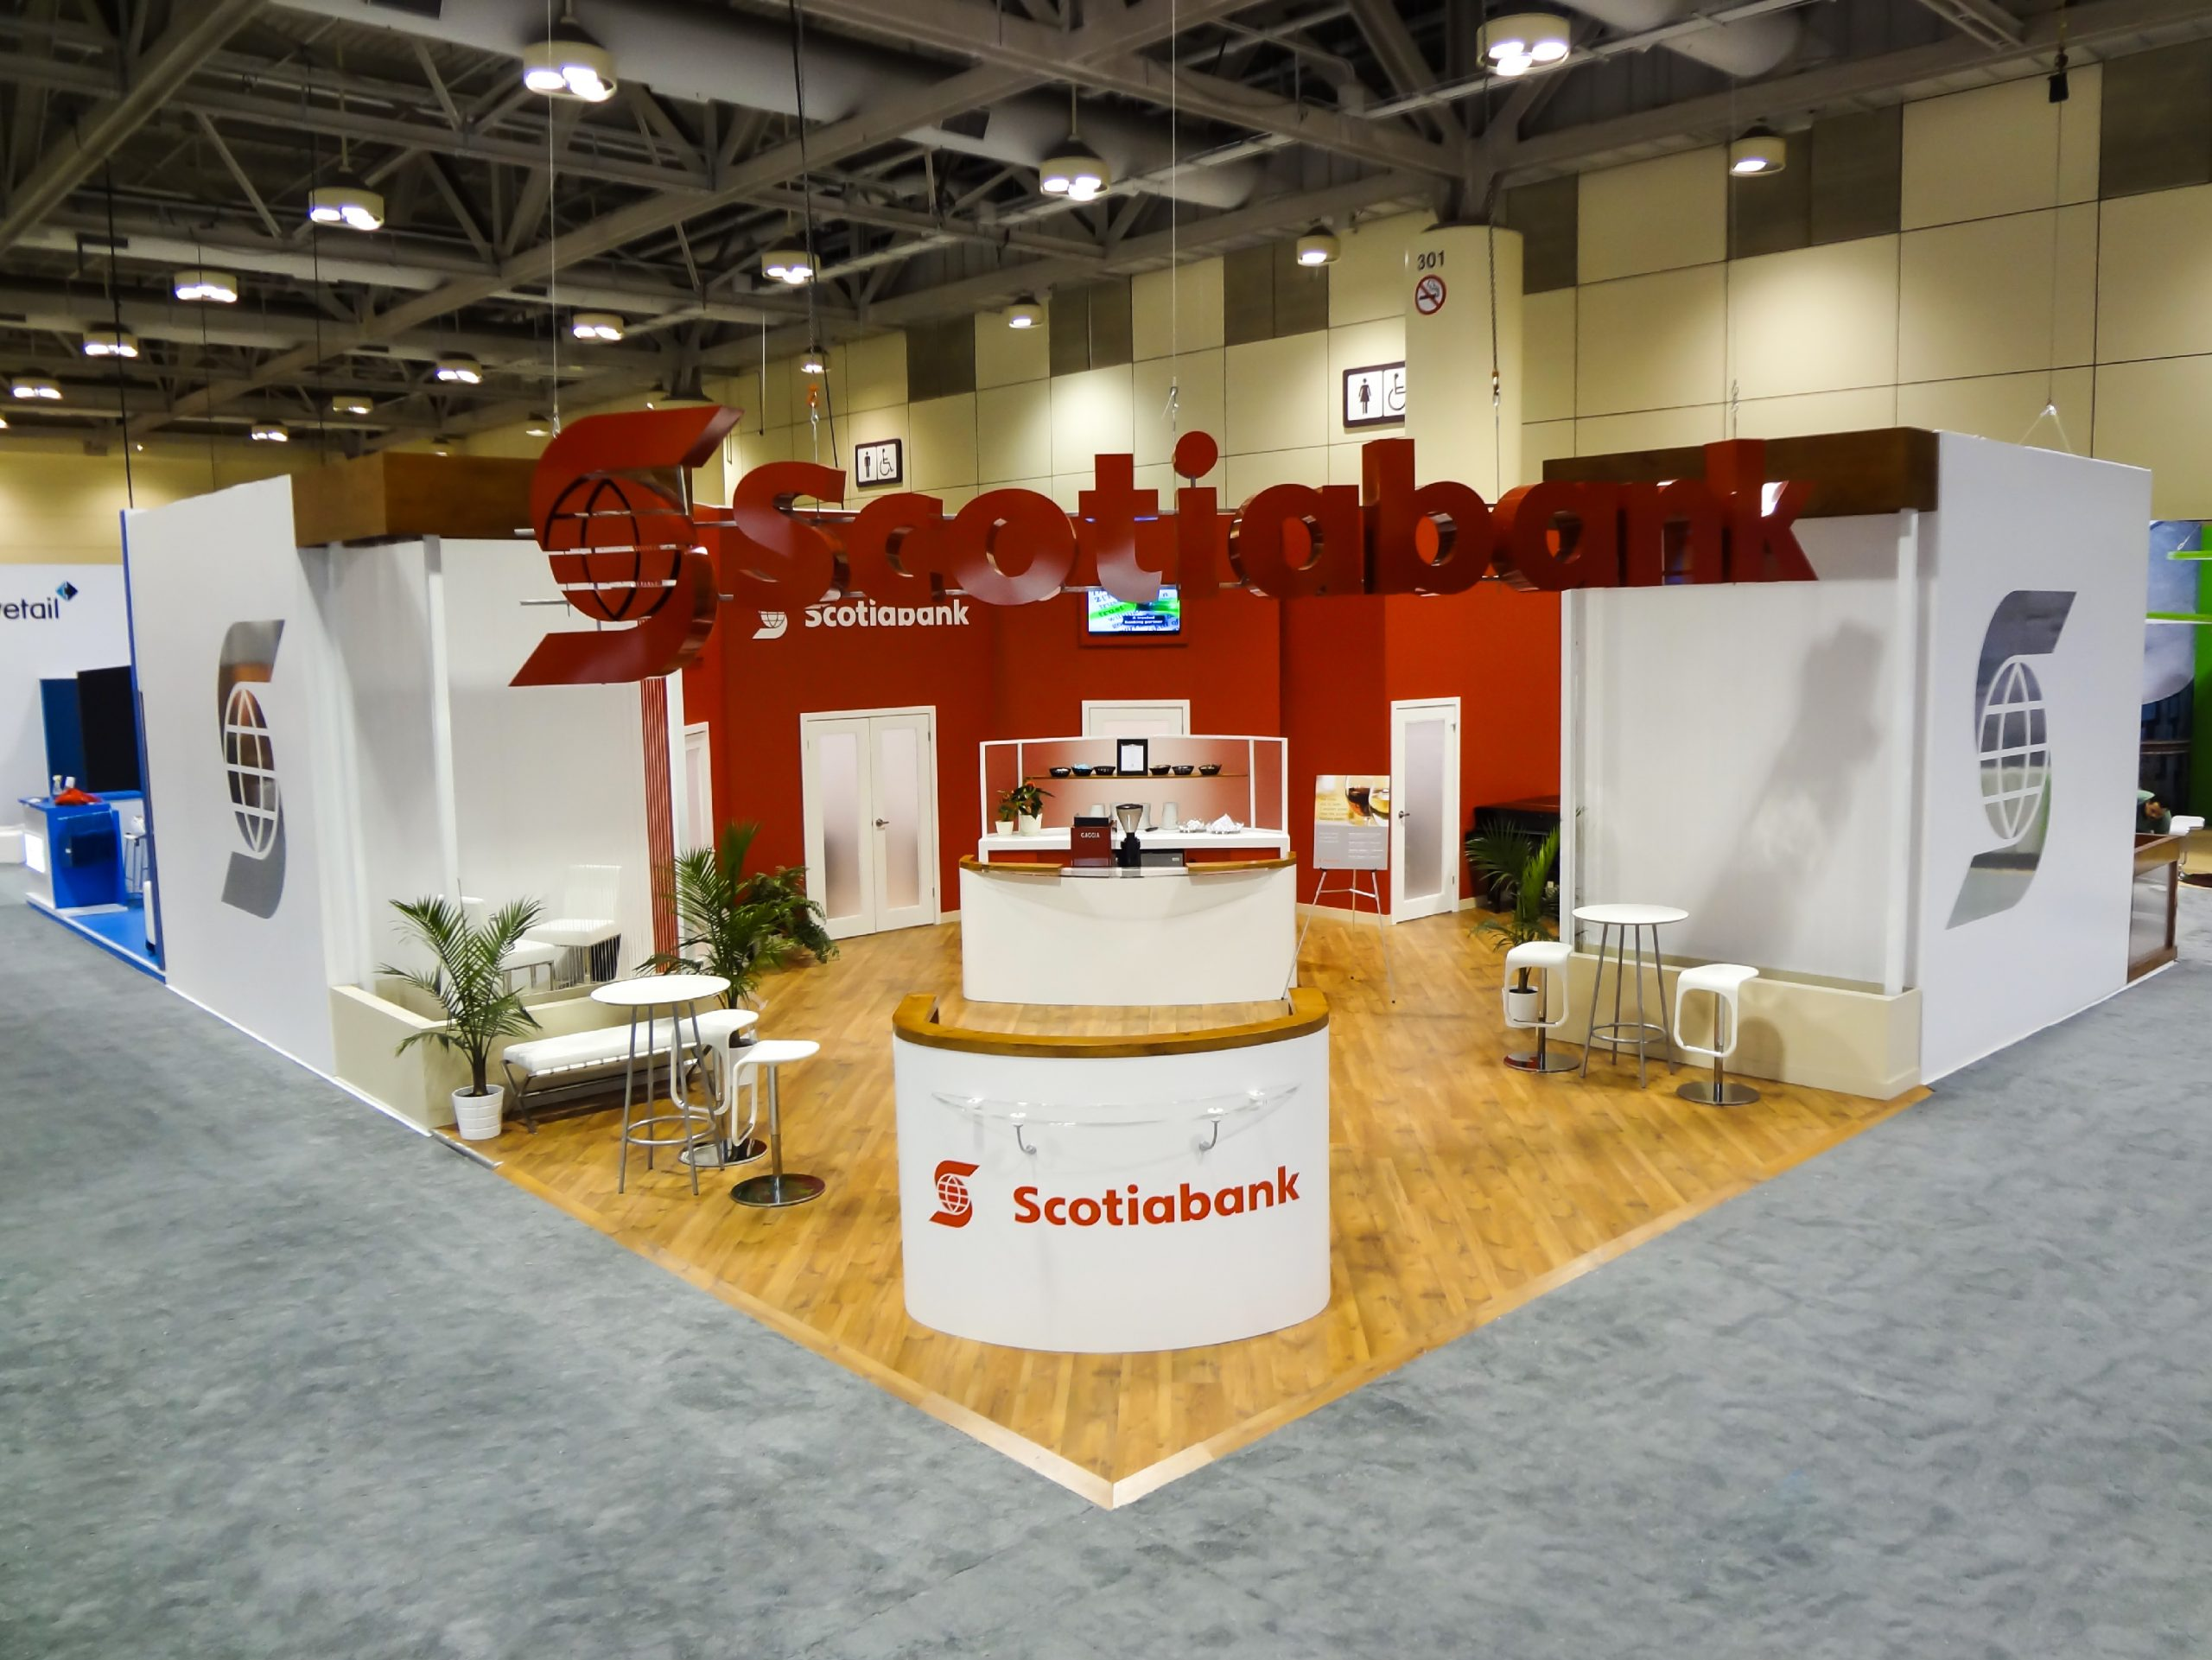 this is an overhead view of the Scotiabank activation, with the custom desk and hanging 3d signage visible